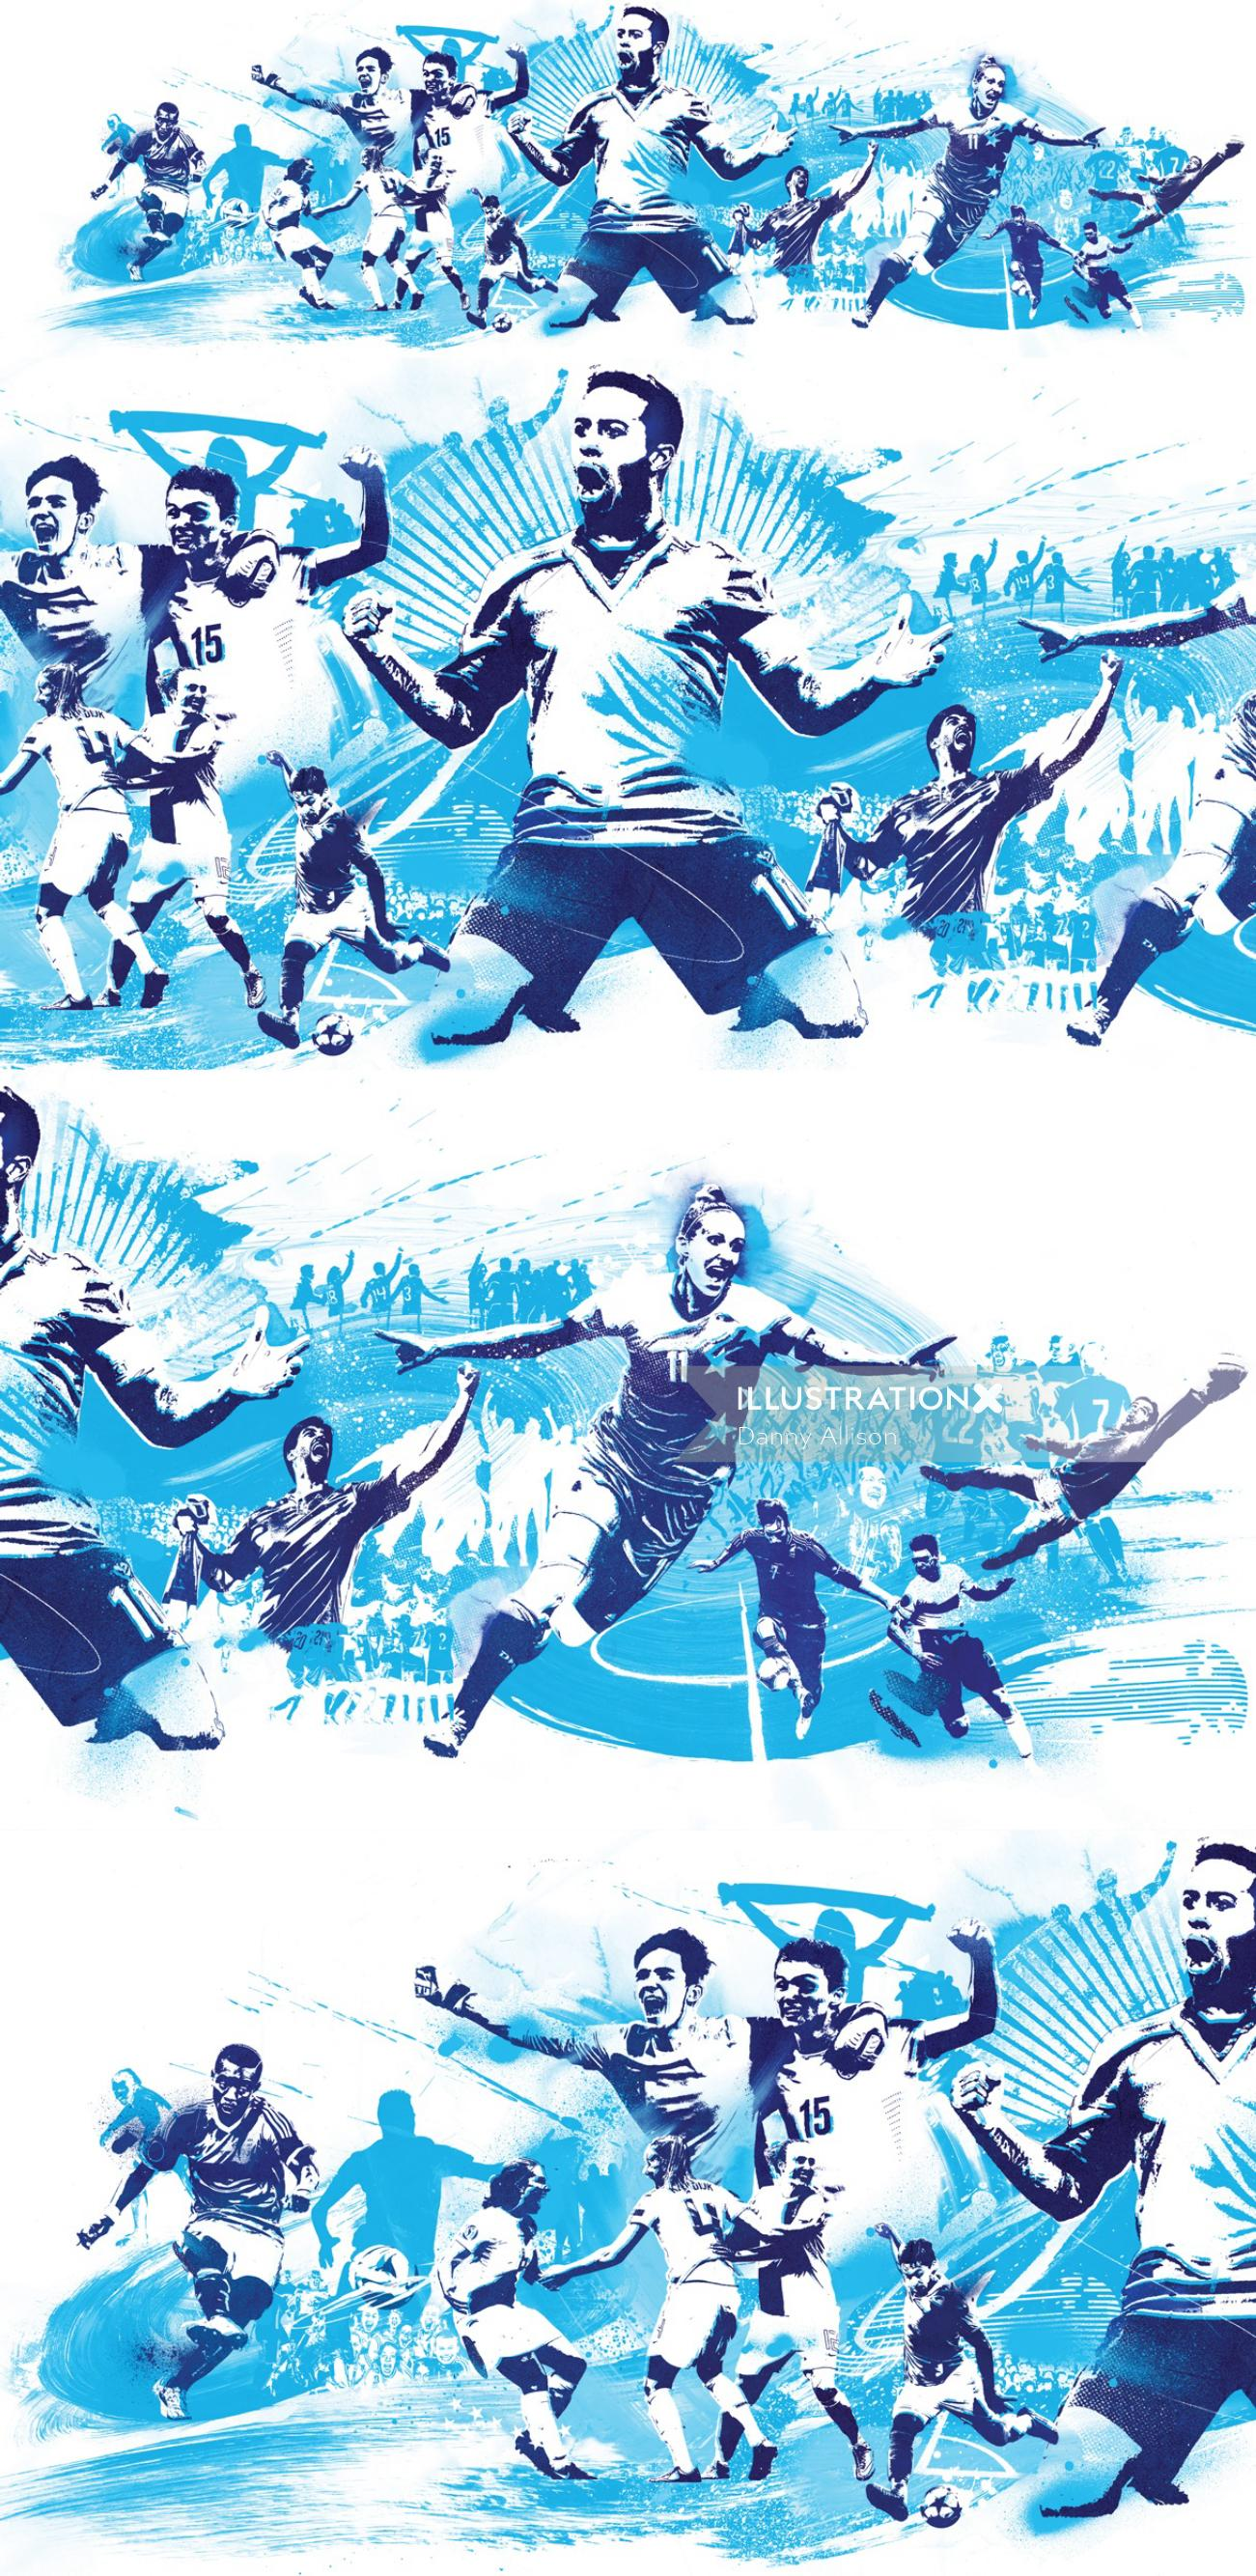 score shoot penalty football uefa vienna goal soccer score celebrate world cup illustration